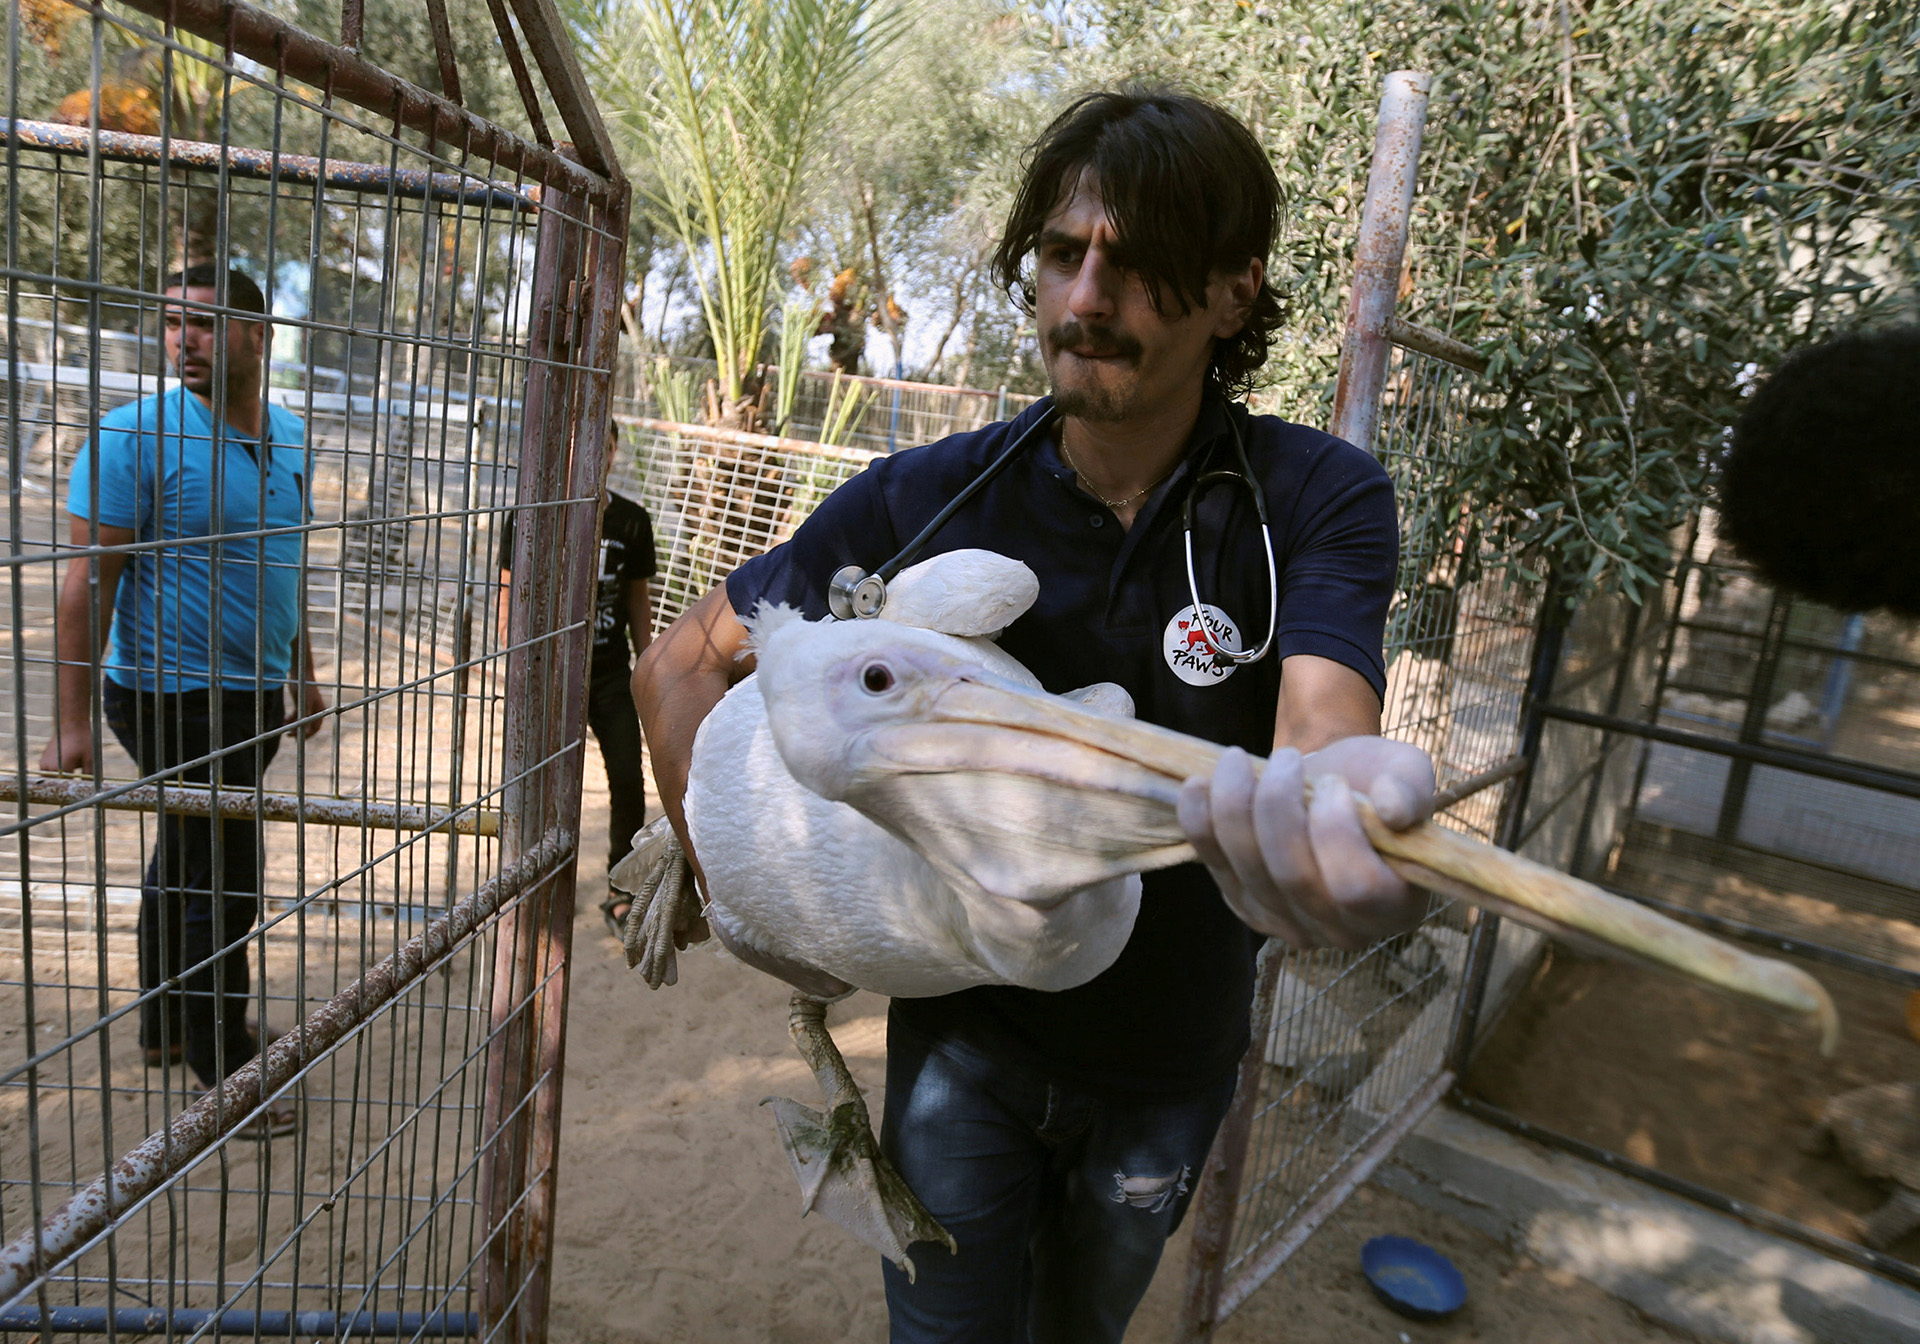 Member of Four Paws International team carries a pelican to be taken out of Gaza, at a zoo in Khan Younis in the southern Gaza Strip